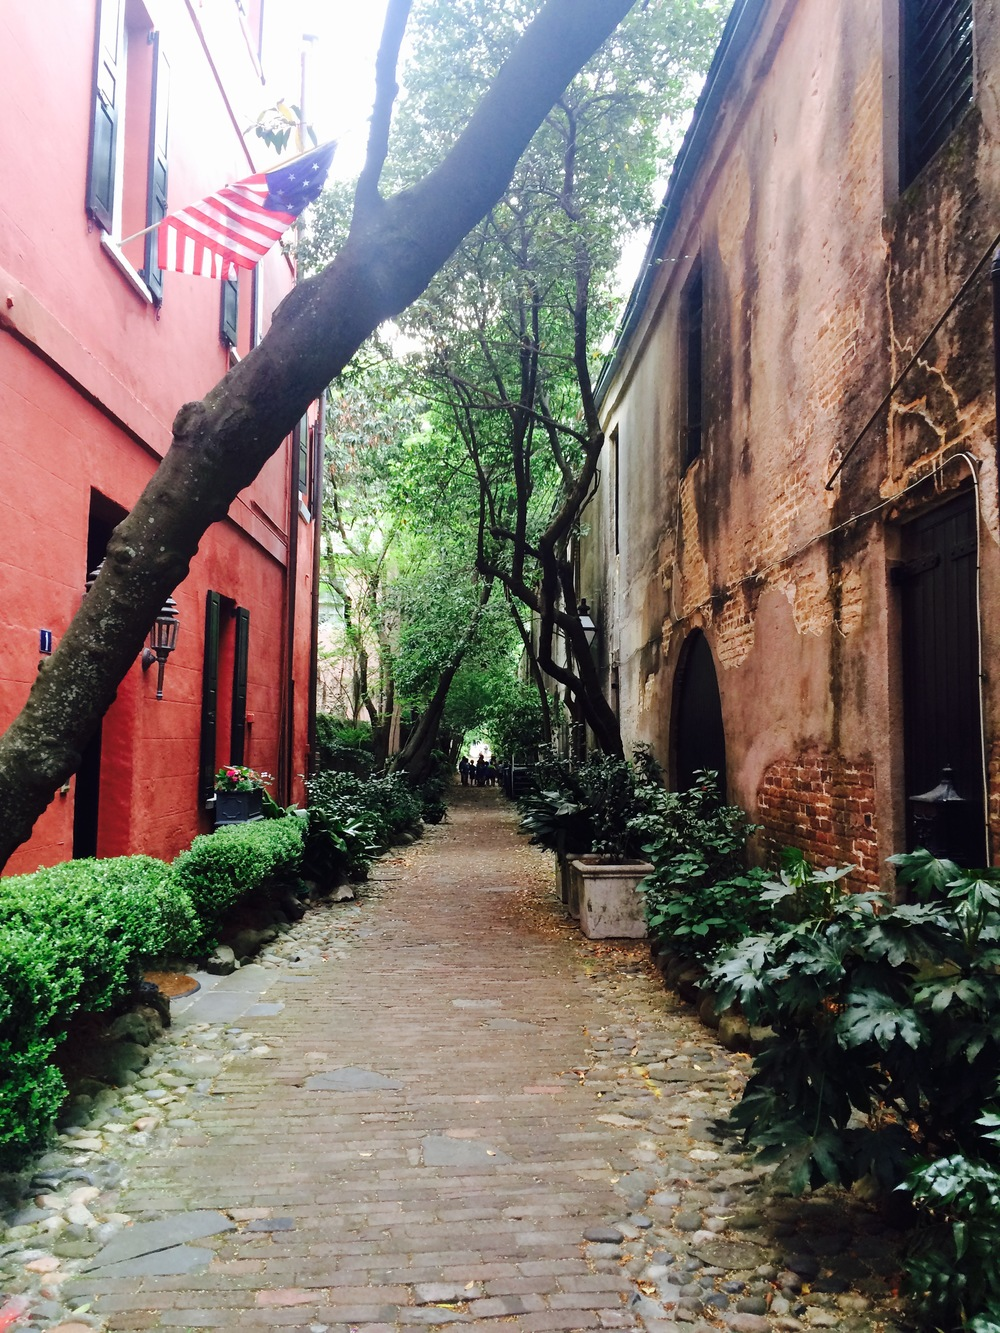 A little alleyway right off of East Bay St. in downtown Charleston.